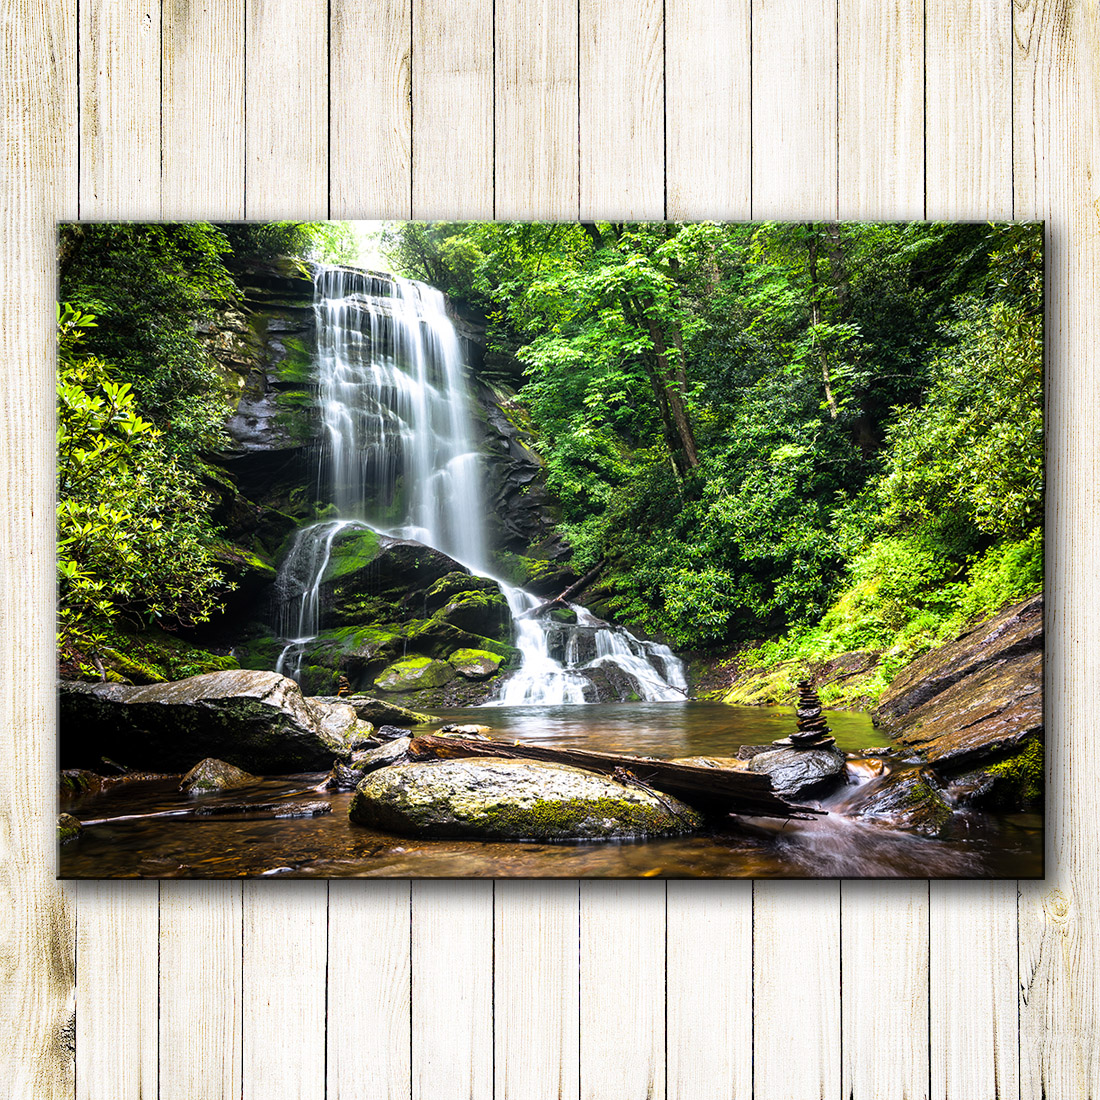 3 Piece Virgin Forest Waterfall Landscape On Canvas Print Home Decoration